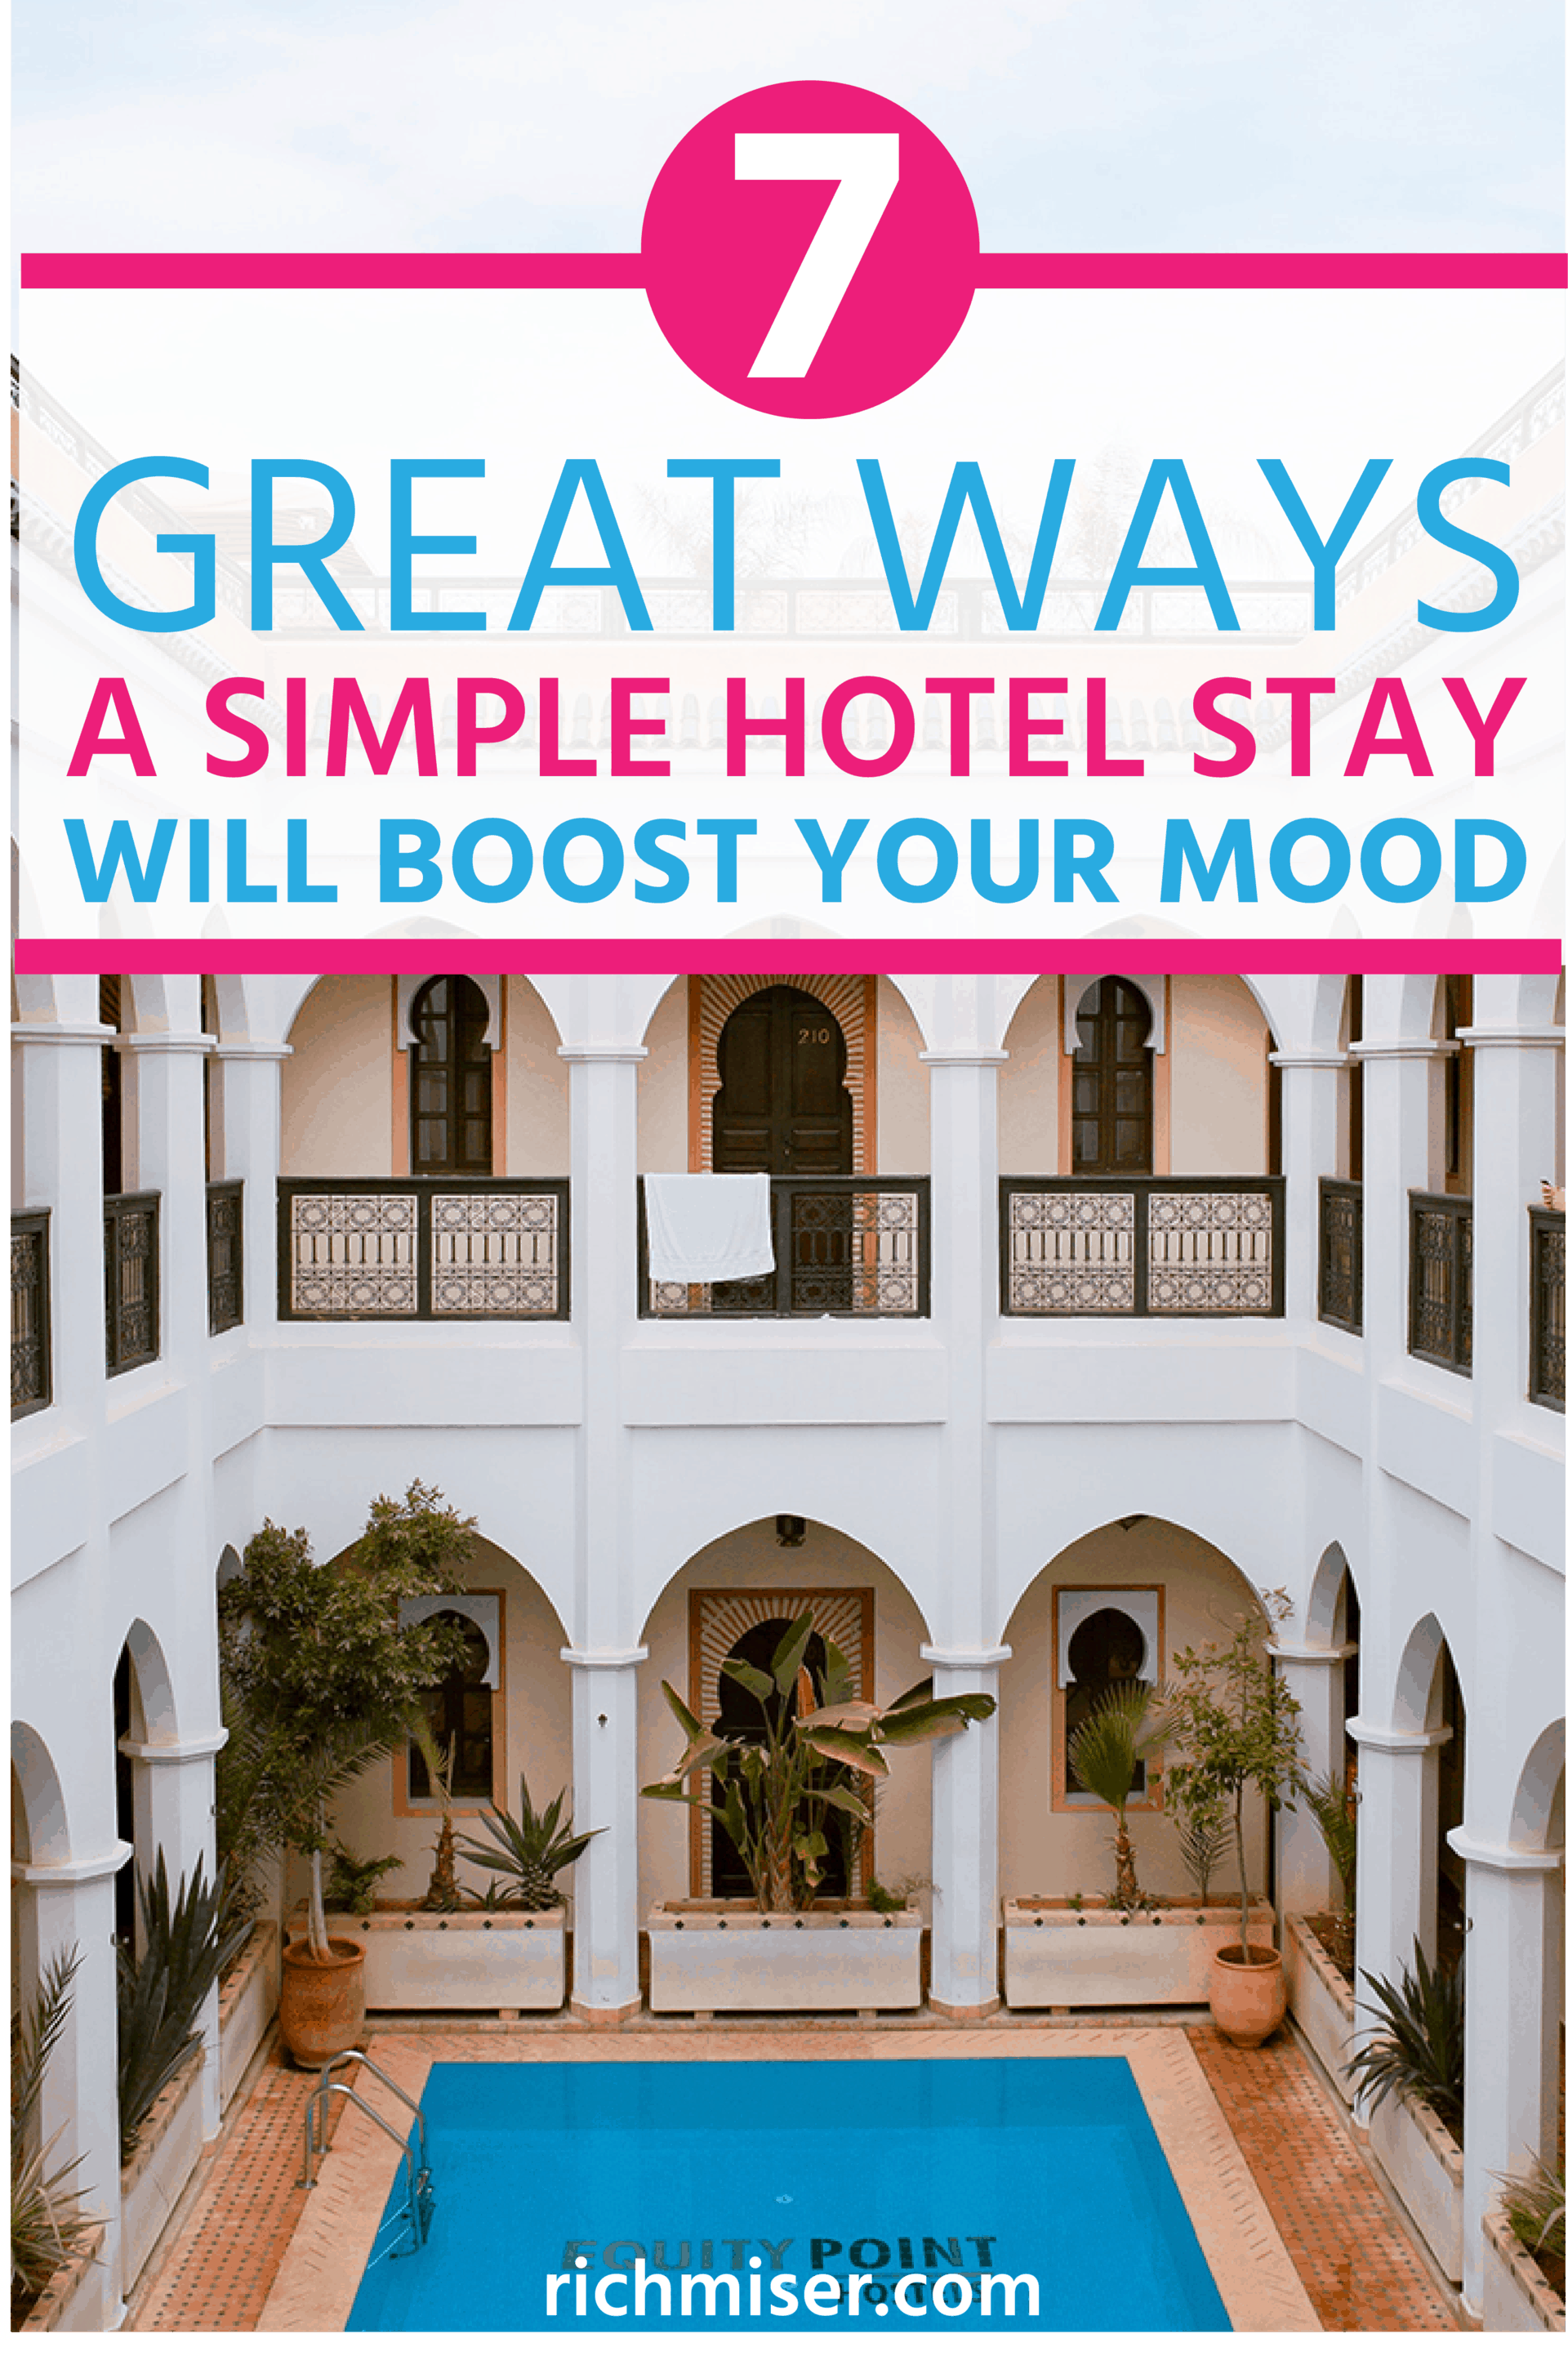 7 Great Ways a Simple Hotel Stay Will Boost Your Mood